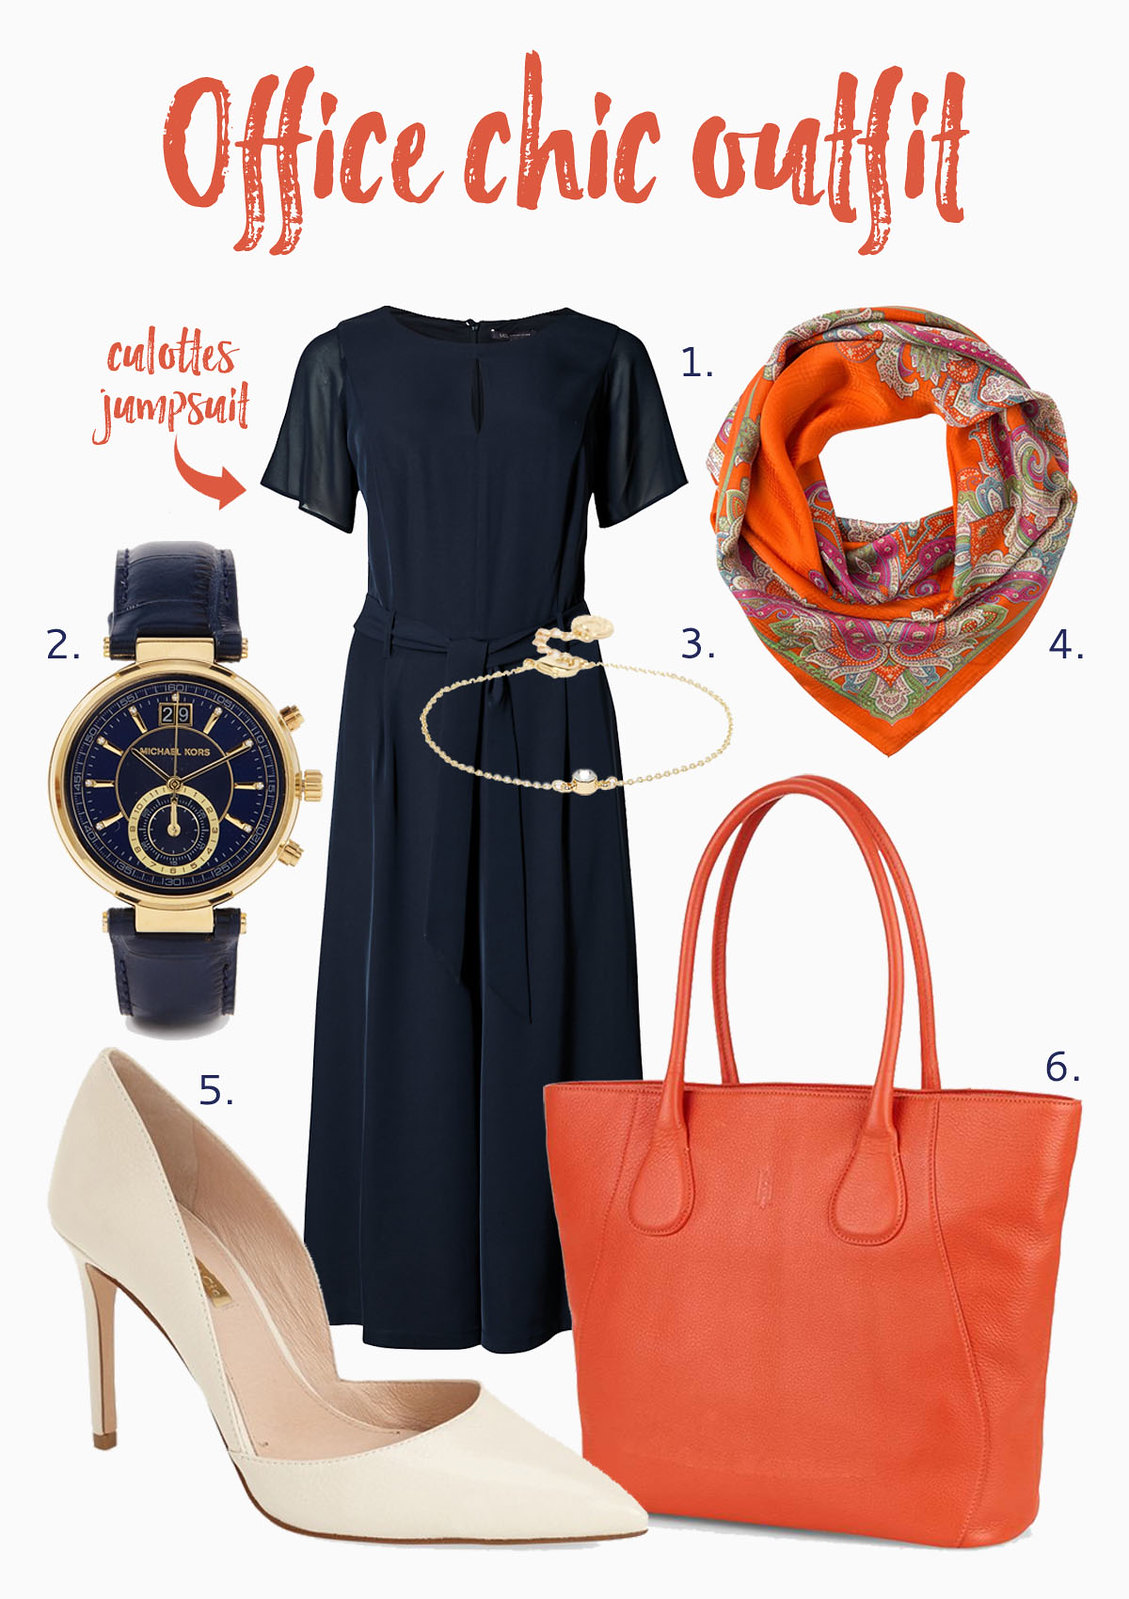 How to Style an Orange Tote Bag | Office chic outfit